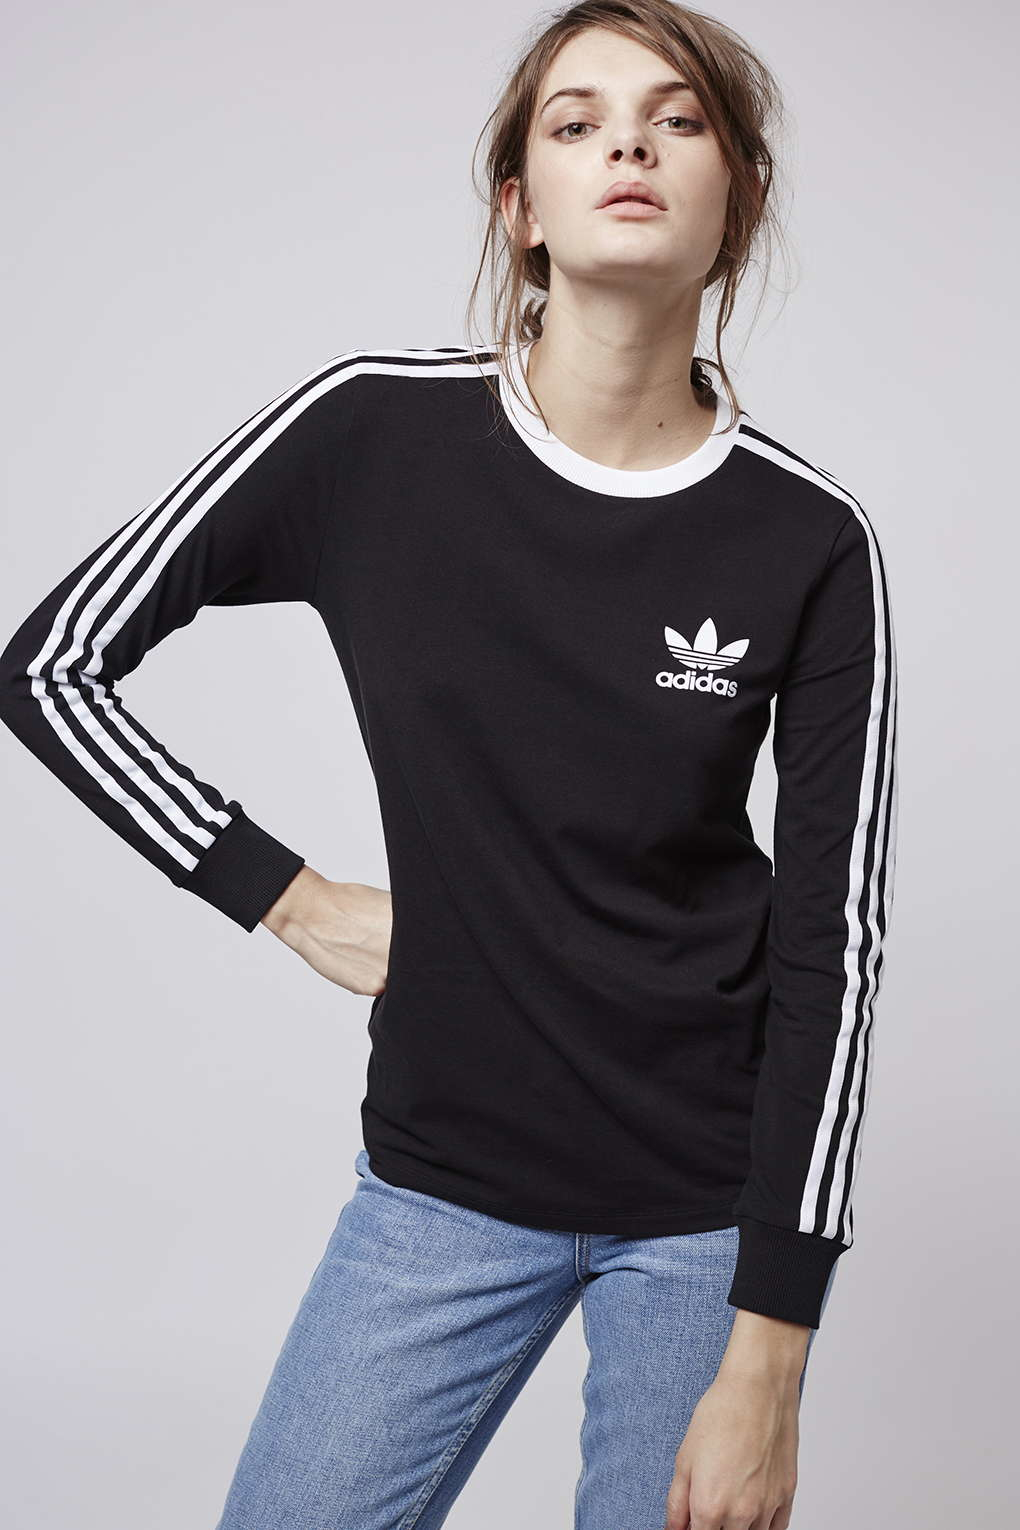 6b0b3f8f72a Adidas Originals Womens 3 Stripes Long Sleeve T Shirt